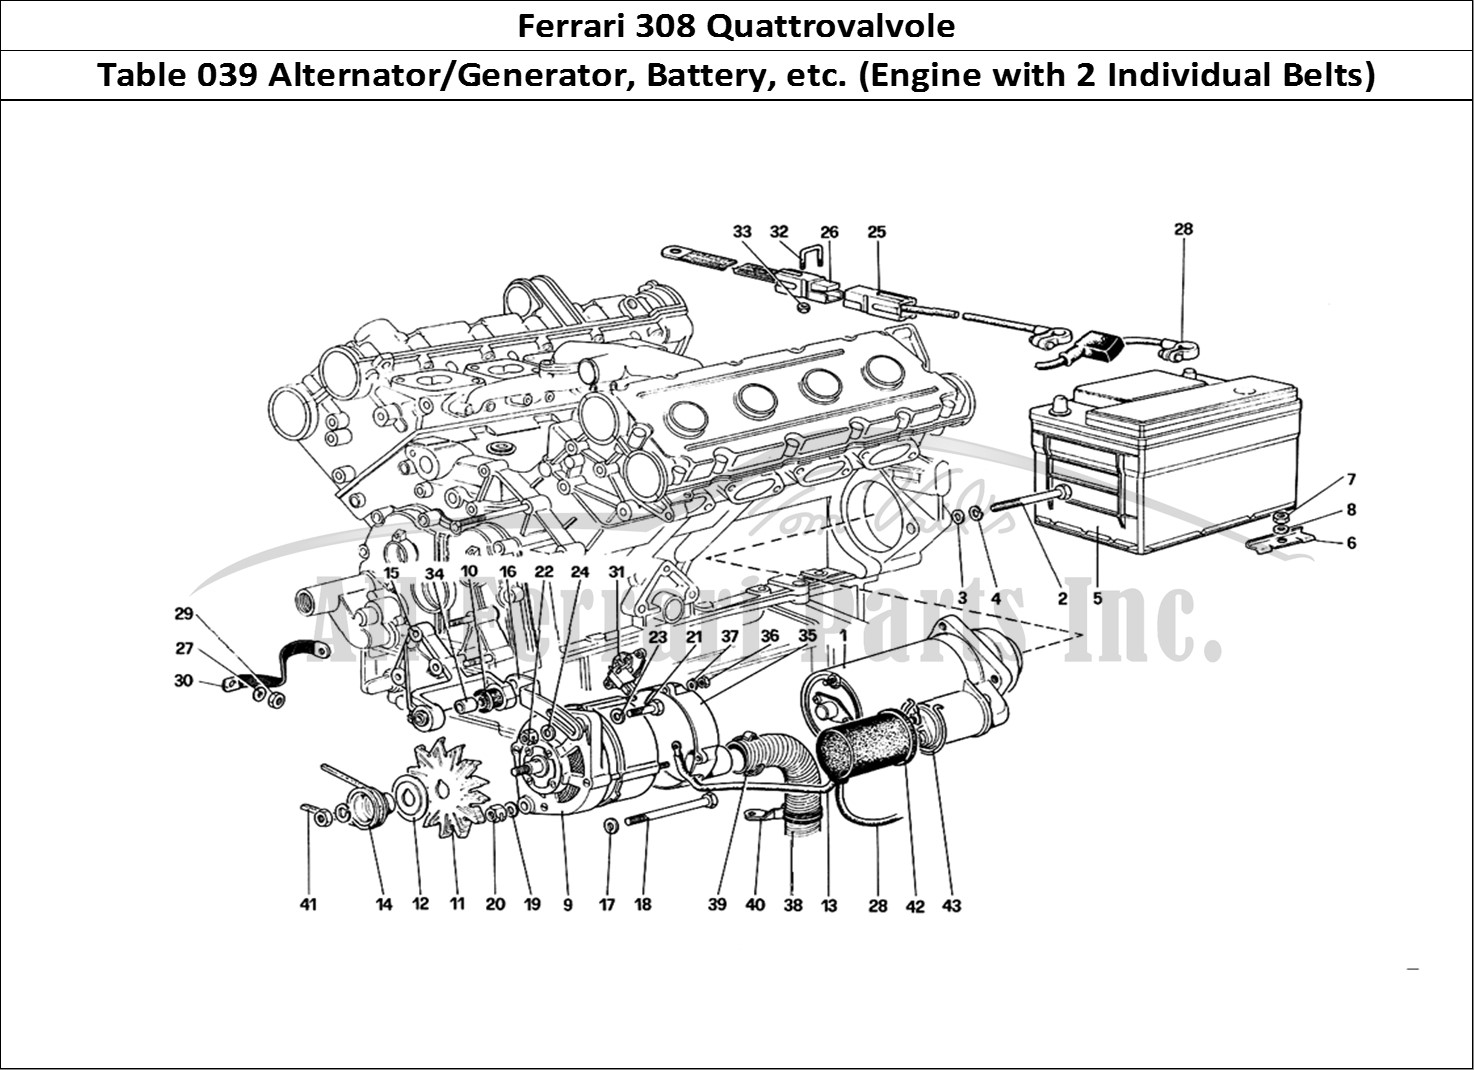 Buy Original Ferrari 308 Quattrovalvole 039 Alternator